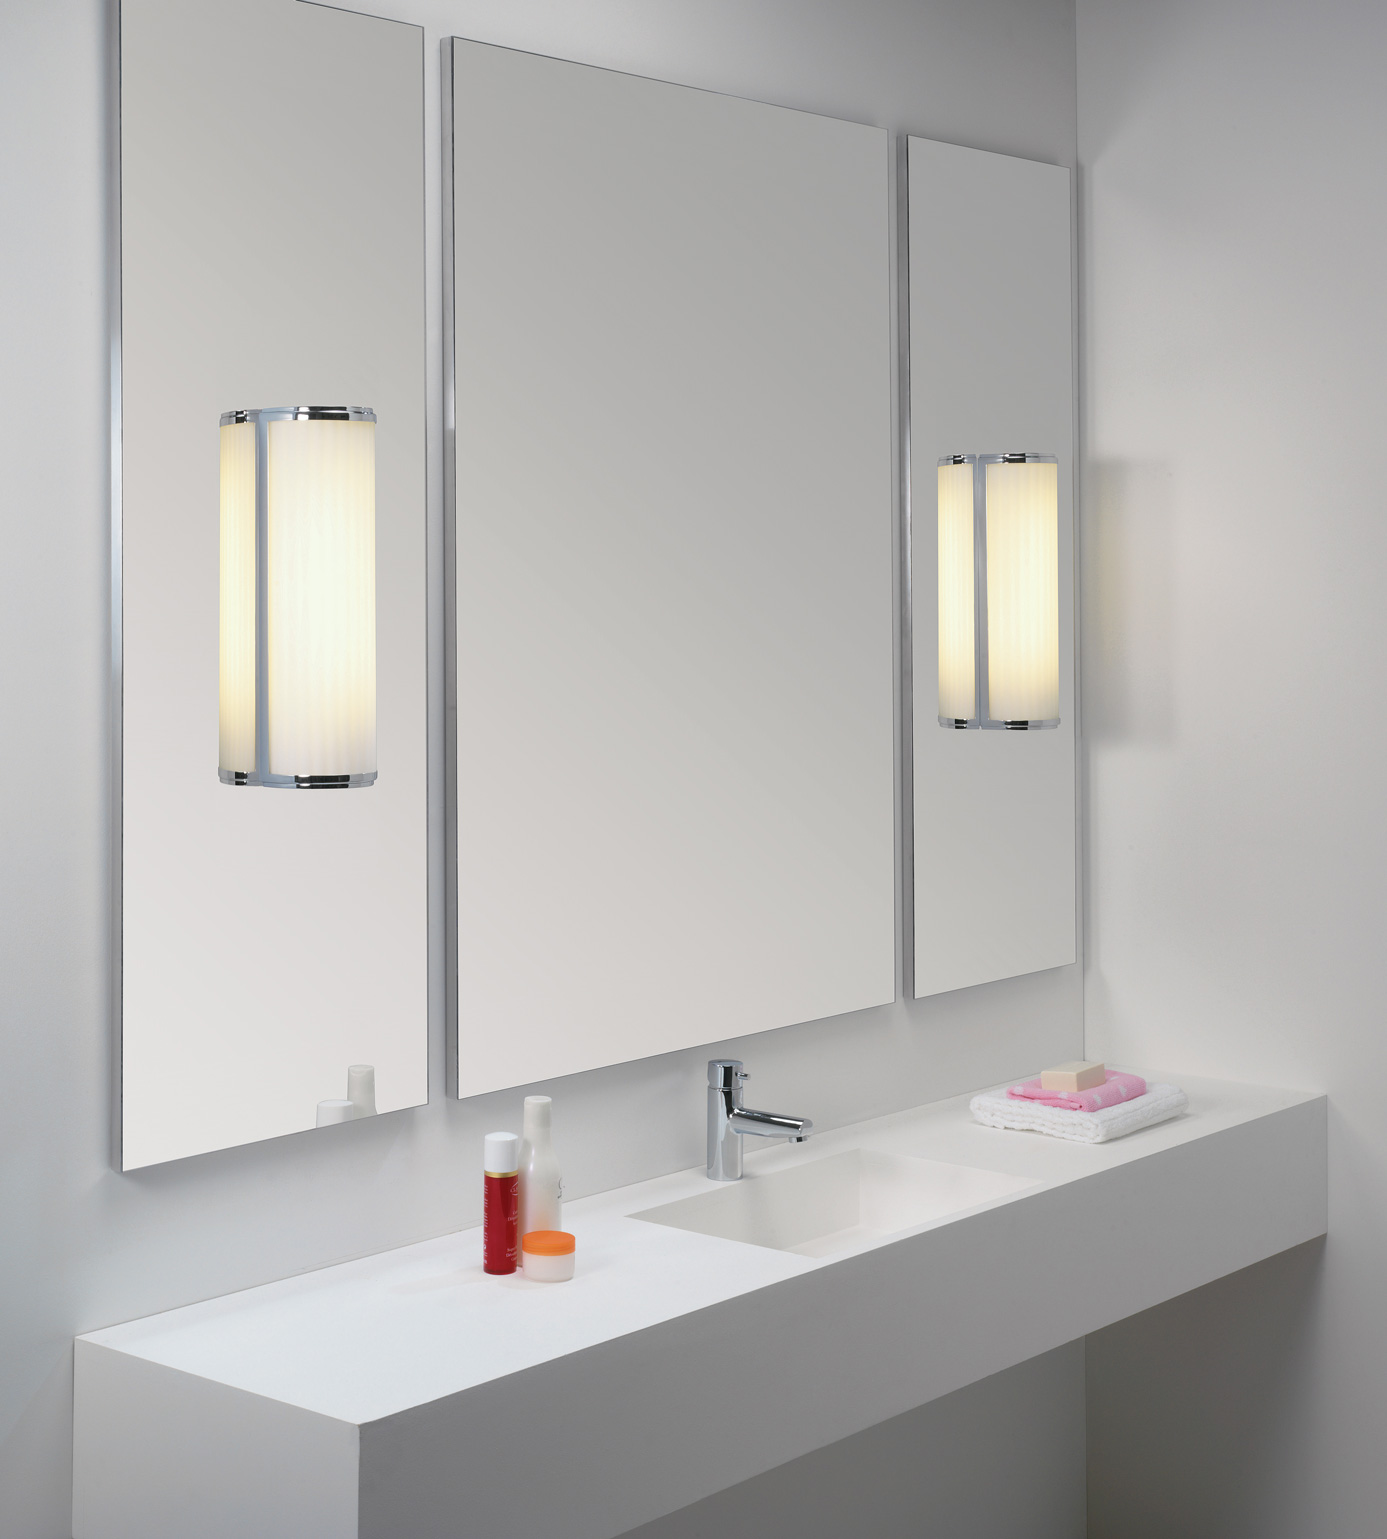 ASTRO MONZA 600 7017 Bathroom wall light 1 X 24W T5 HO Chrome glass finish. IP44 Thumbnail 2